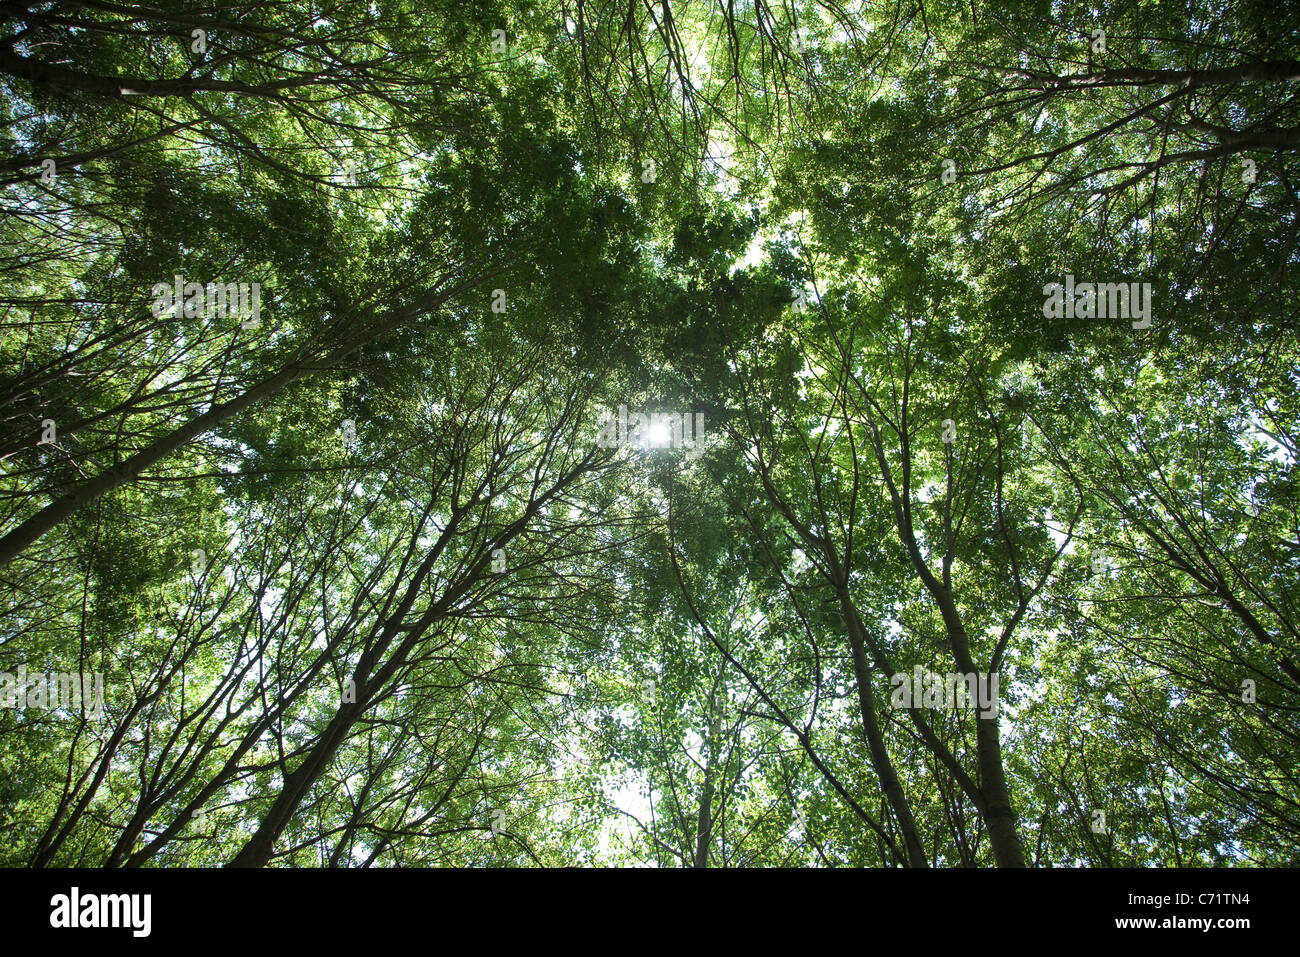 Tree canopy, low angle view Stock Photo